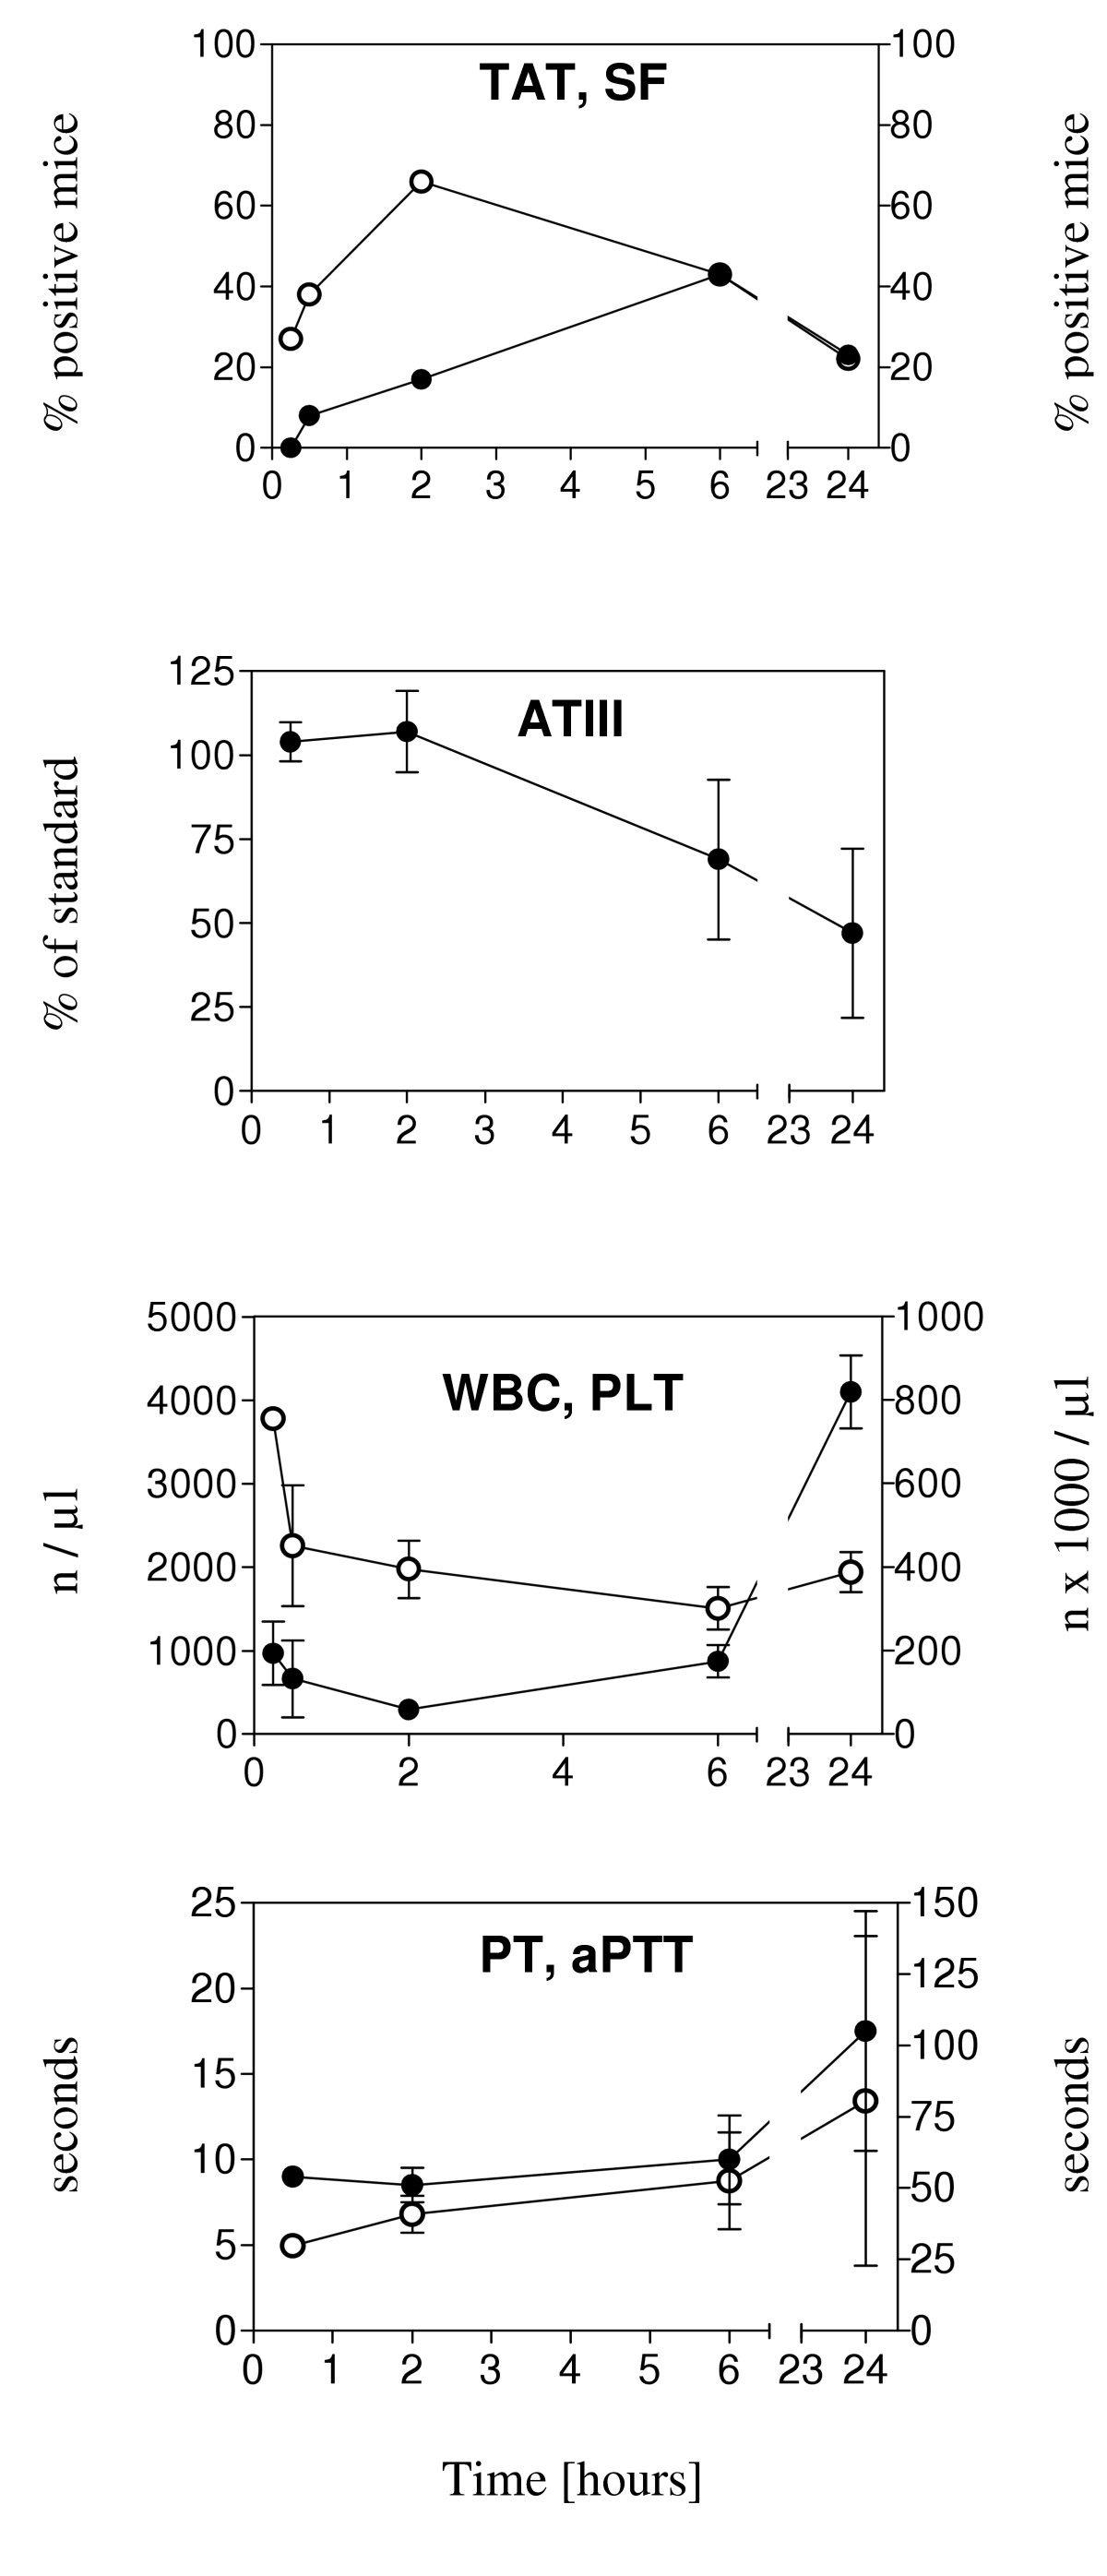 https://static-content.springer.com/image/art%3A10.1186%2F1477-9560-3-21/MediaObjects/12959_2005_Article_40_Fig3_HTML.jpg